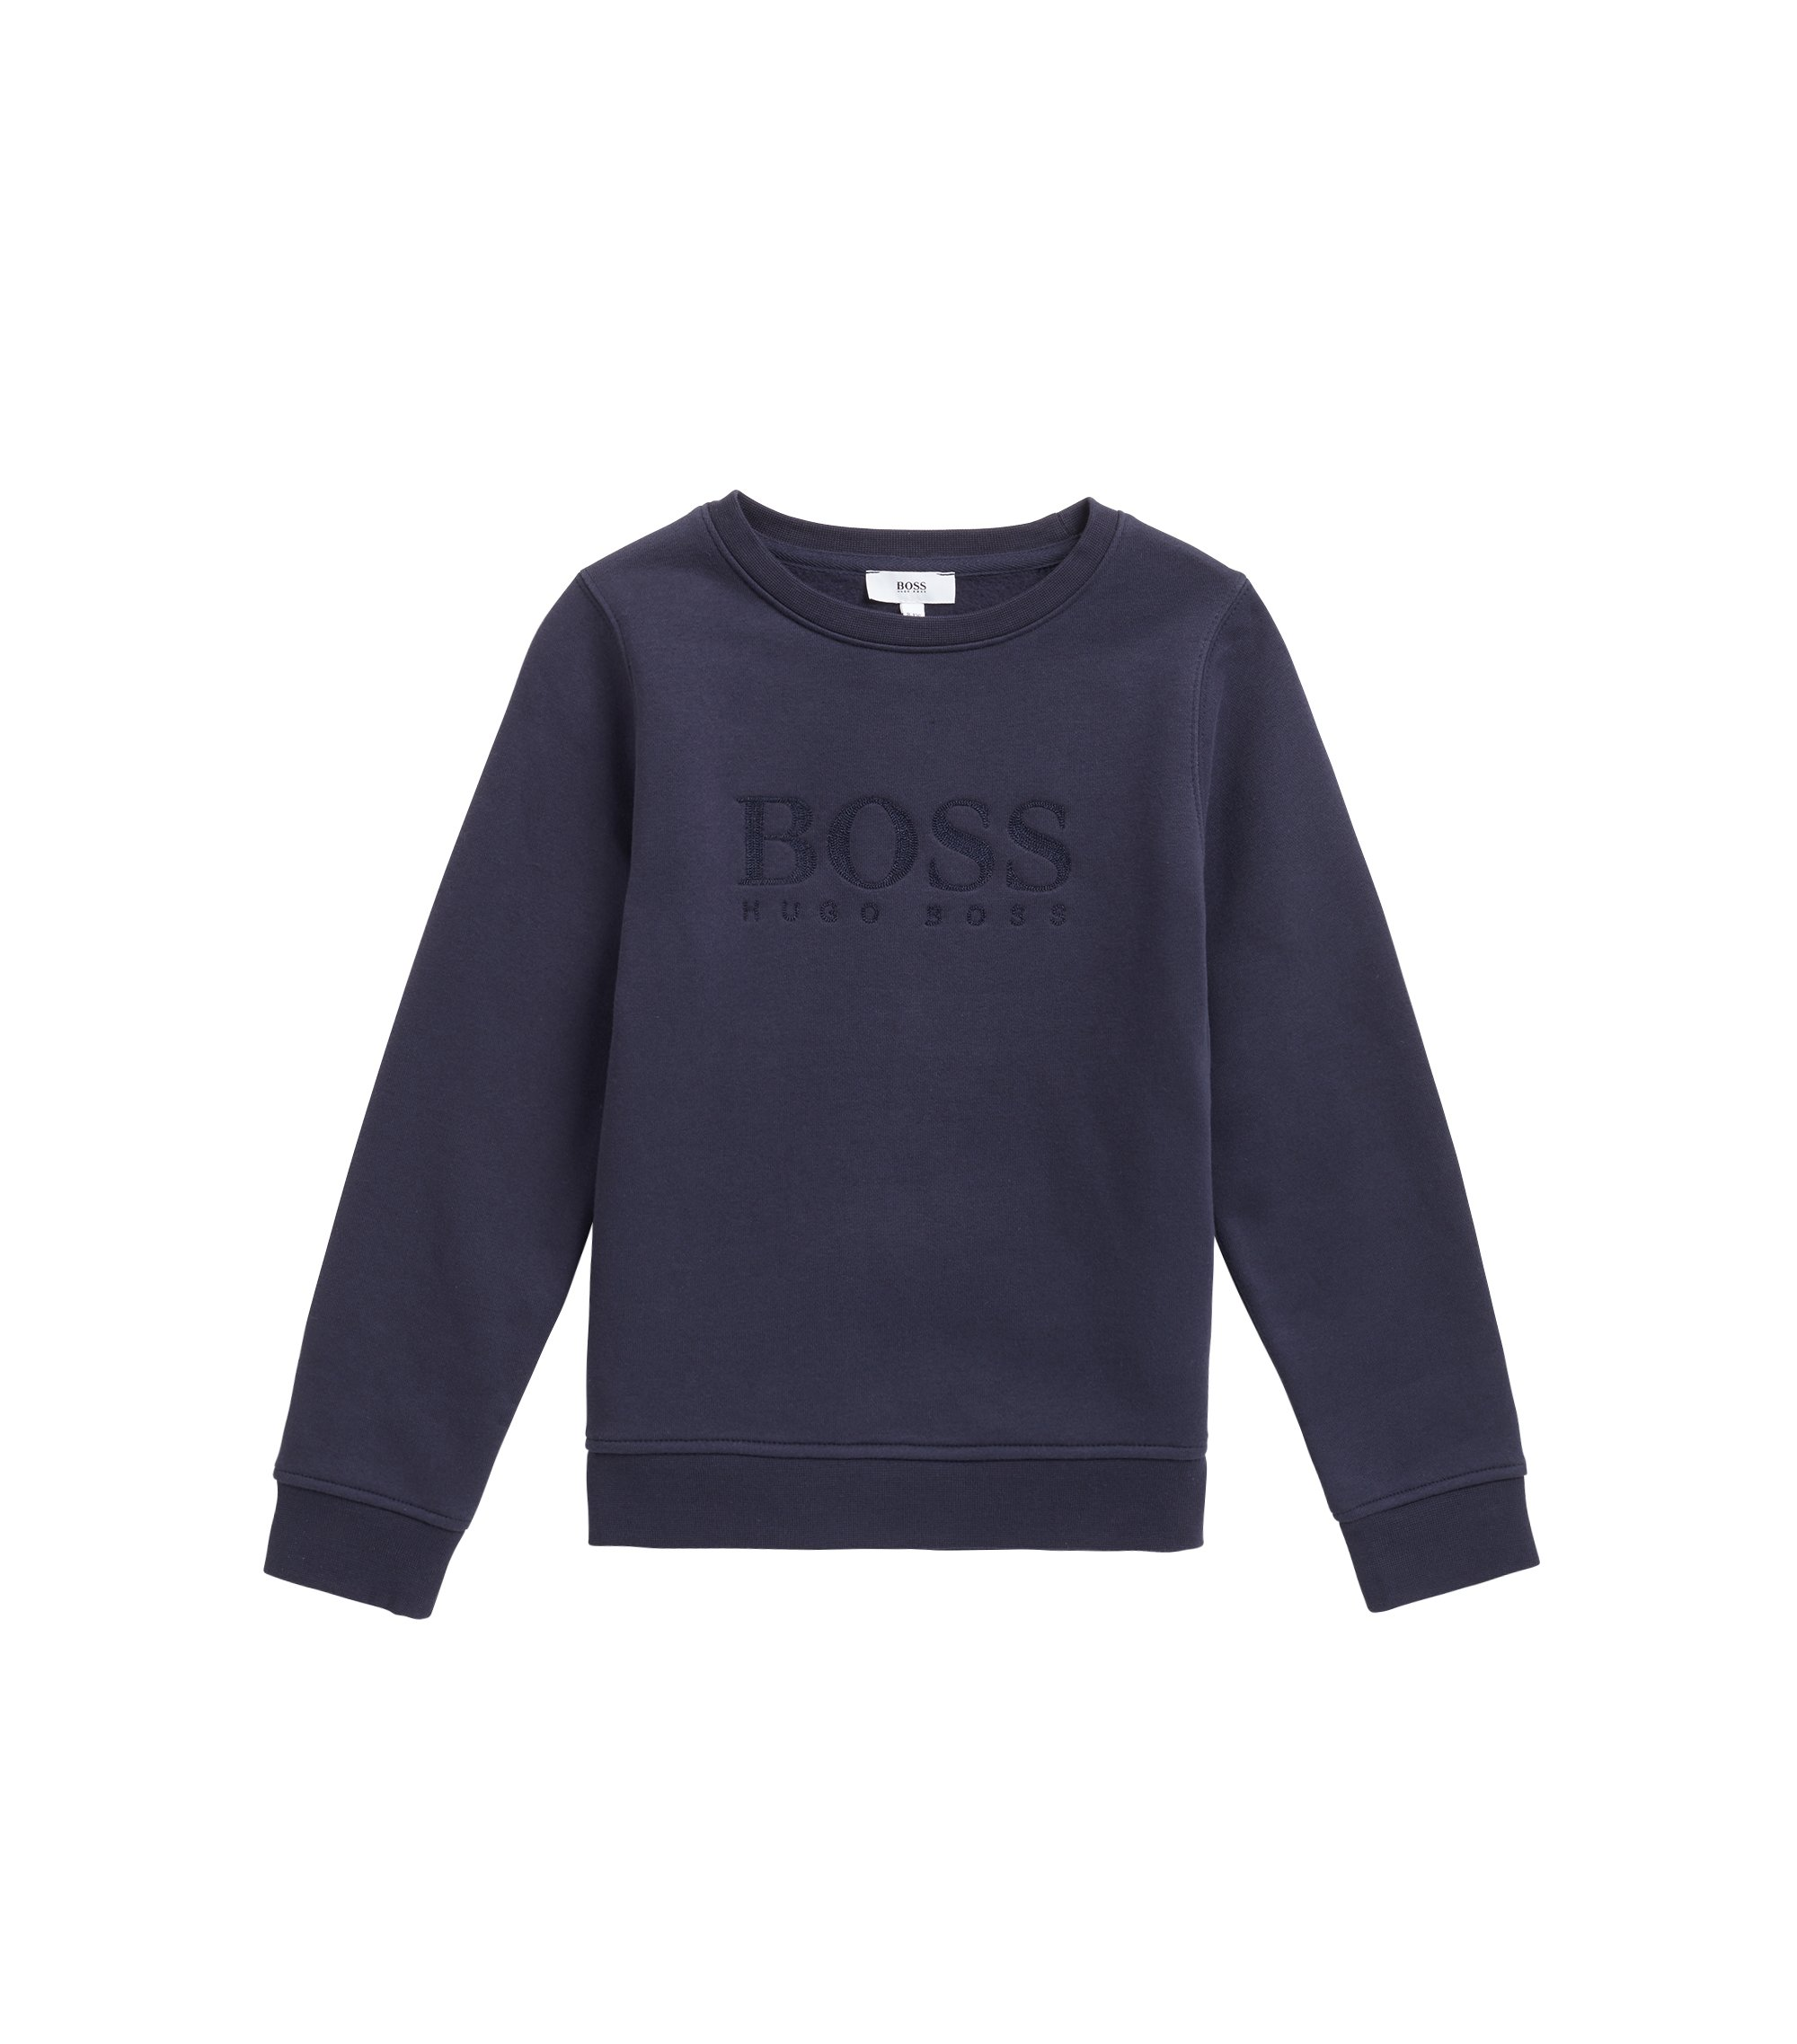 Kids' cotton-blend sweatshirt with logo embroidery, Dark Blue